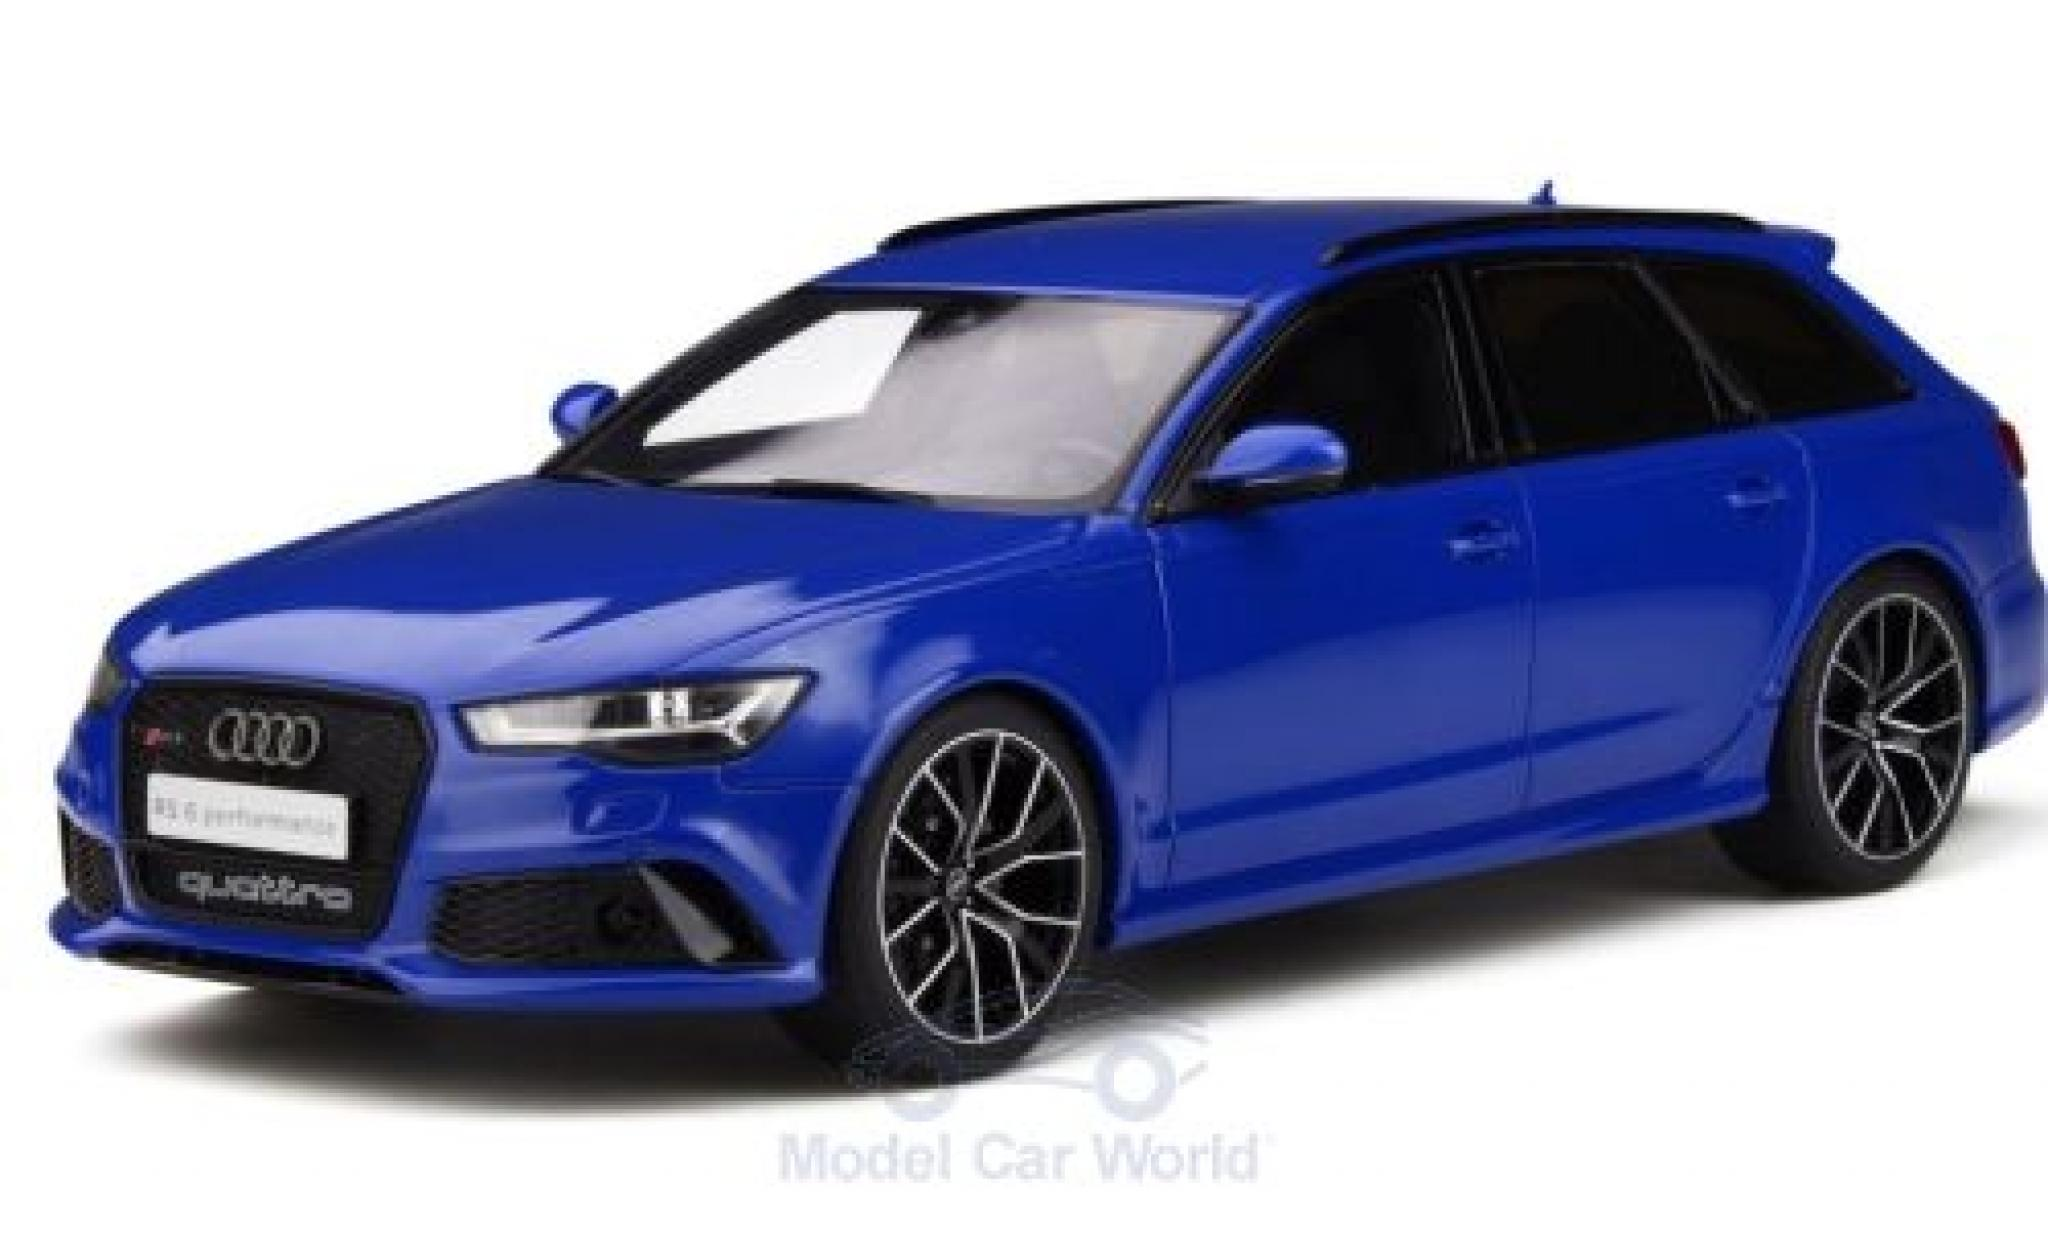 Audi RS6 1/18 GT Spirit (C7) Performance Nogaro Edition metallic blue 2018